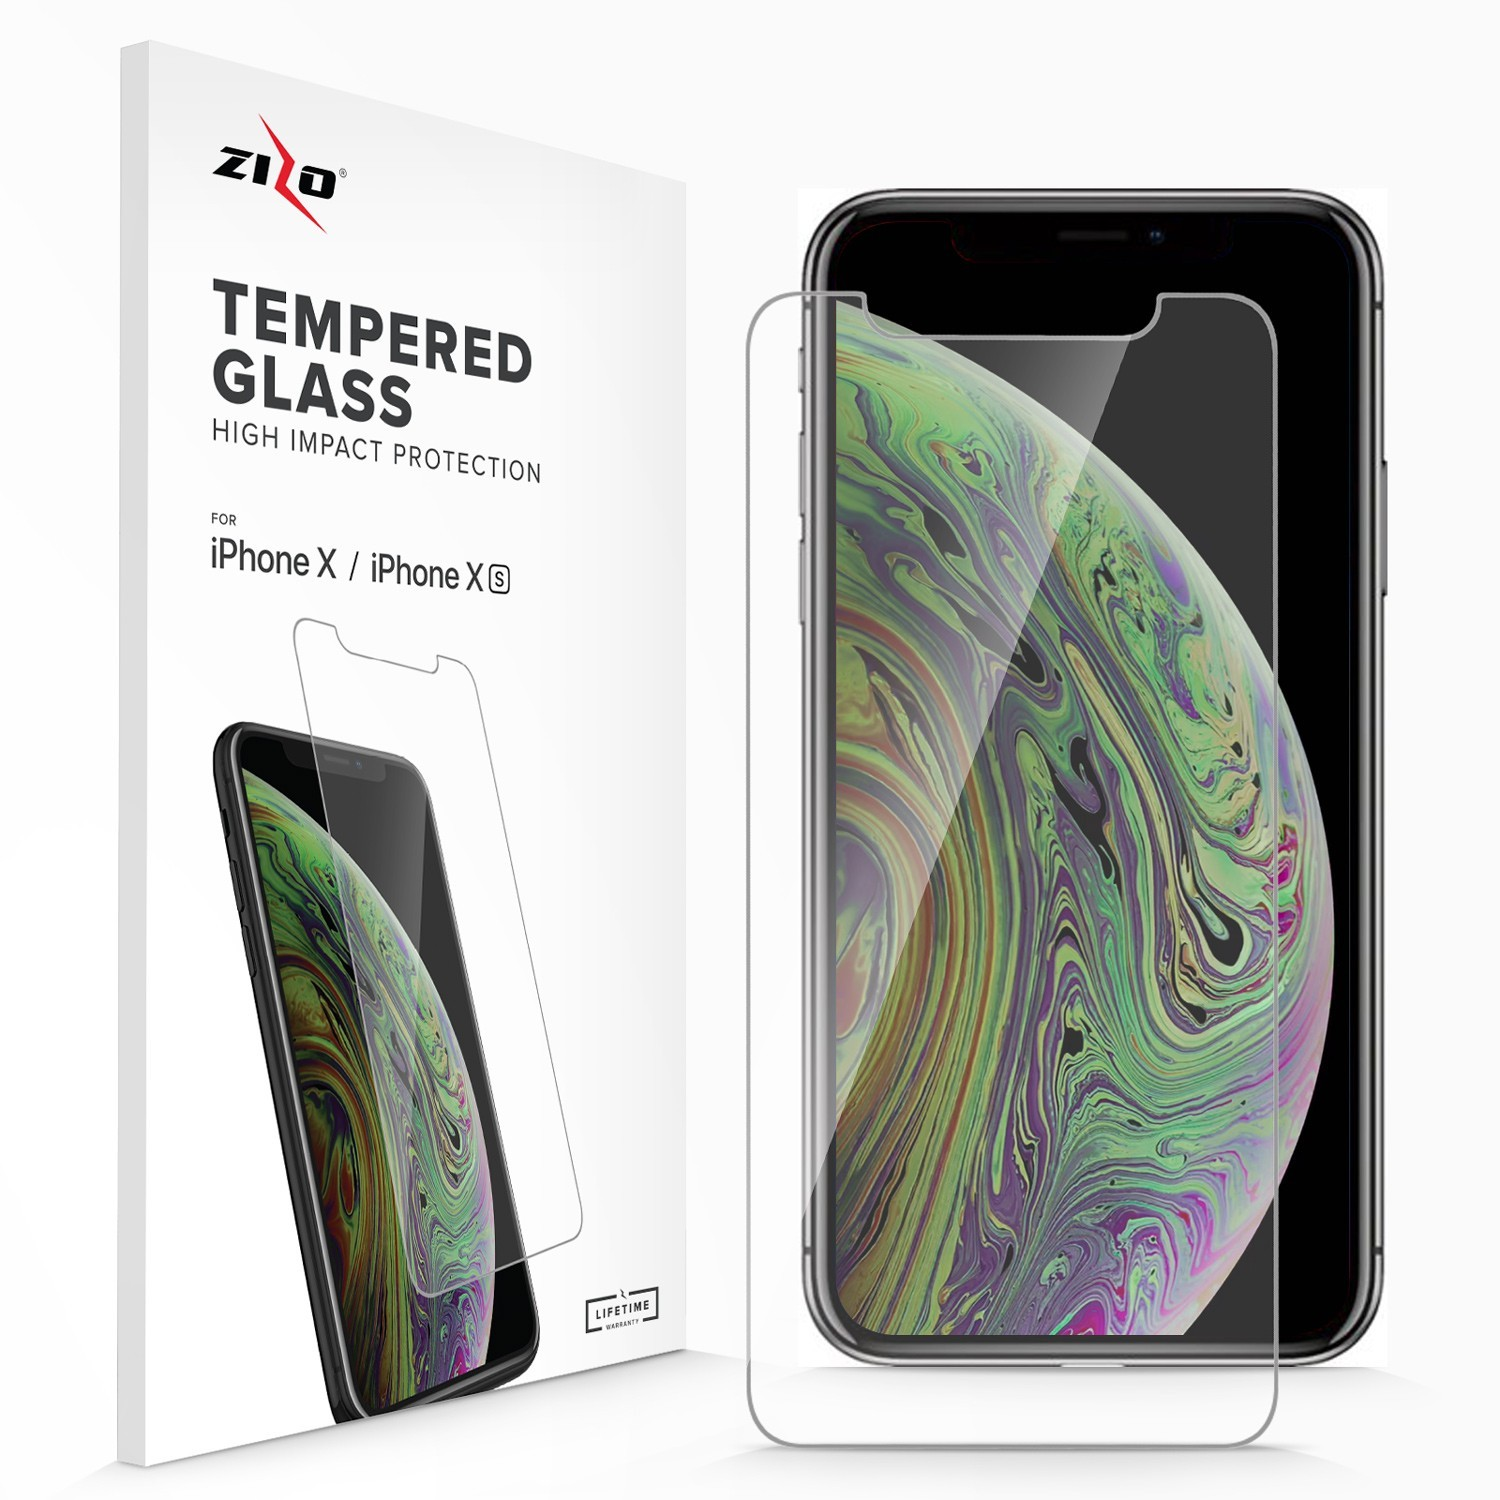 Screen Protector - ZIZO Tempered Glass for iPhone 11 Pro & iPhone Xs/X